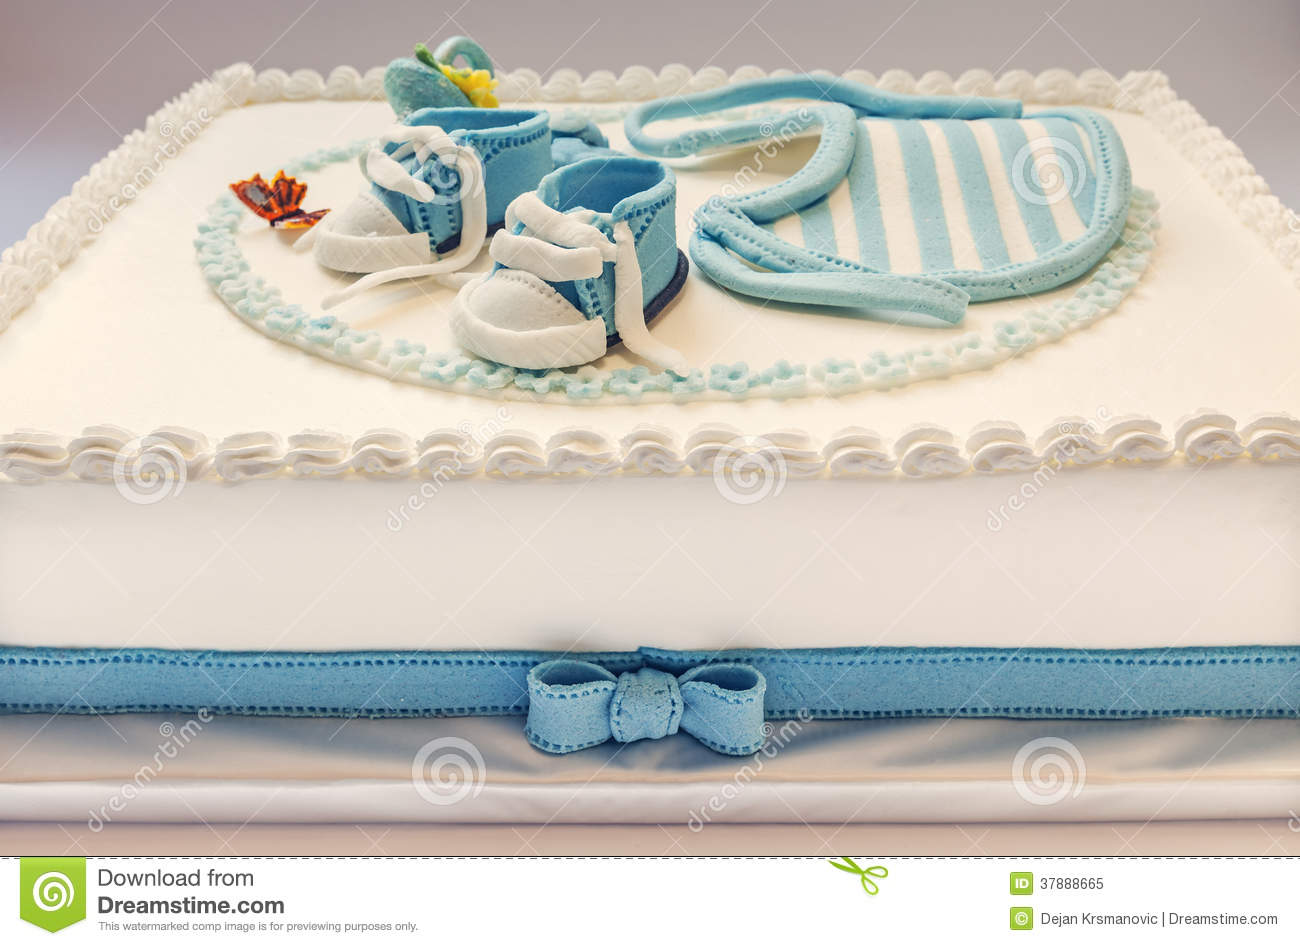 Baby Birthday Cake Stock Image Image Of Dessert Childhood 37888665